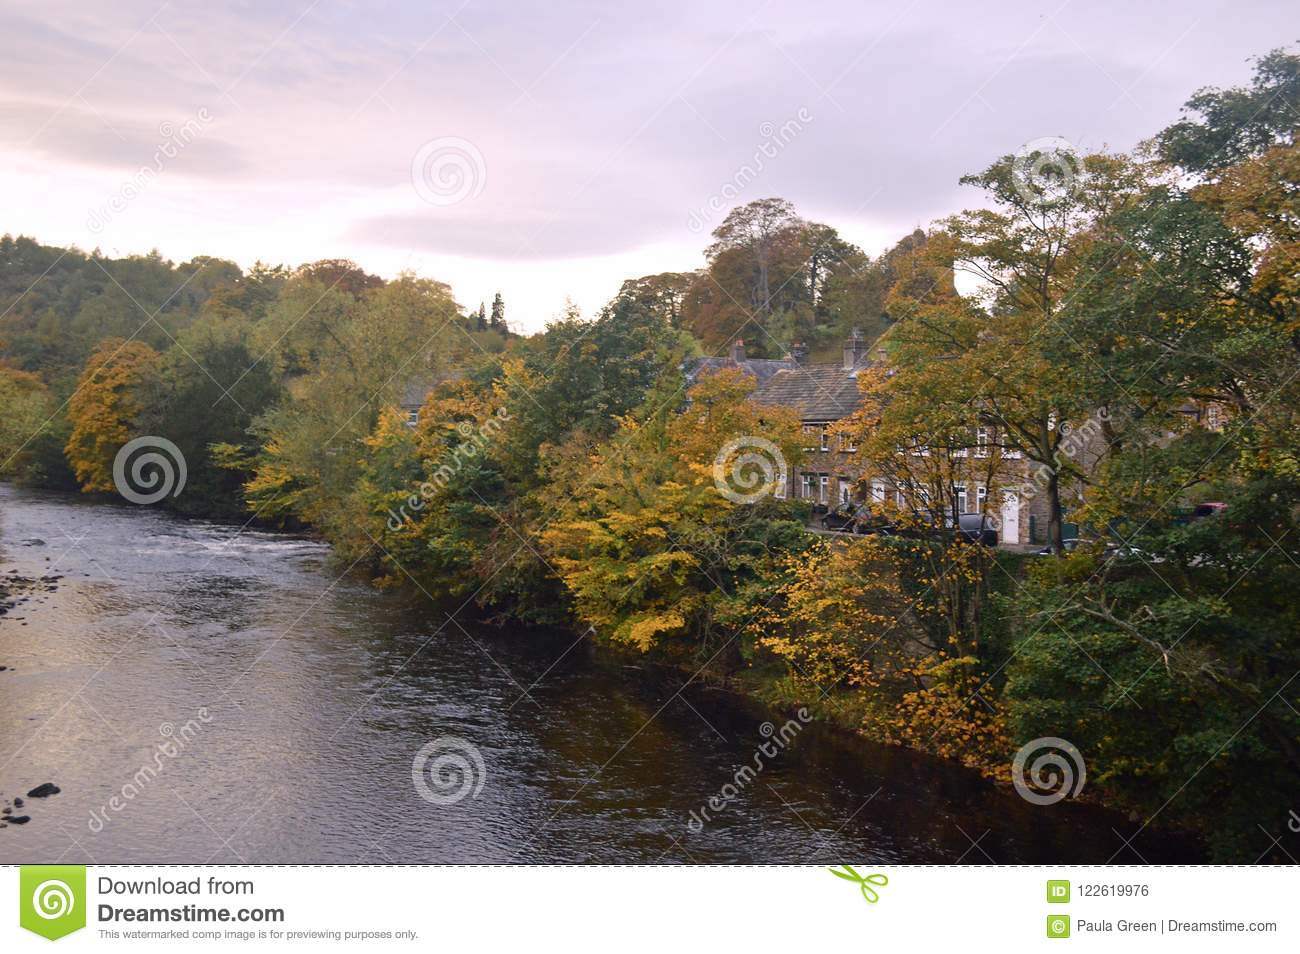 Autumn trees by the river swale